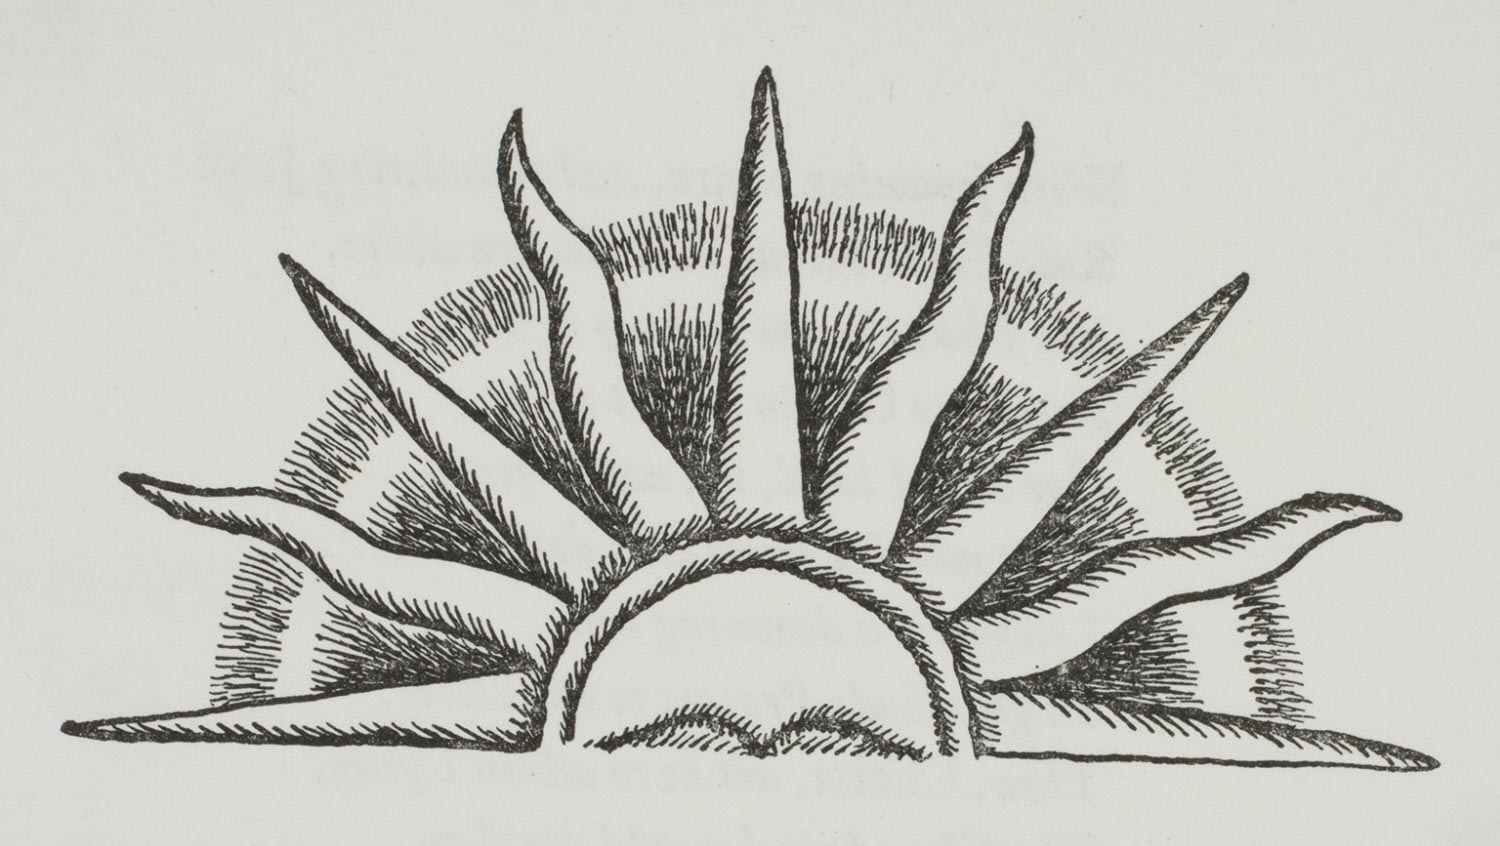 Illustration for The Day of Doom and Other Poems